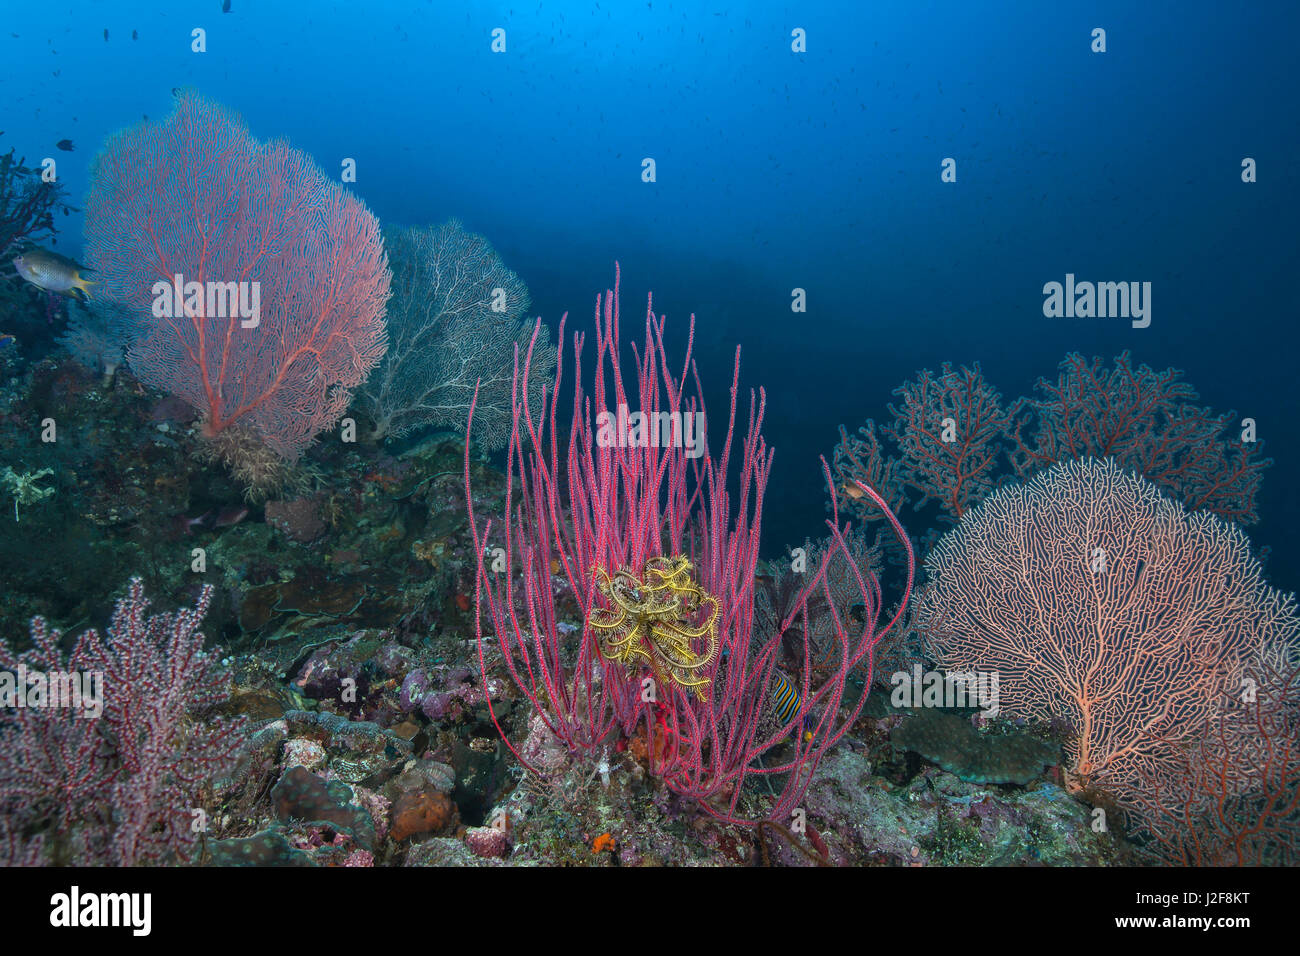 Coral reef populated by a variety of sea fans in bright colors. Raja Ampat, Indonesia. - Stock Image